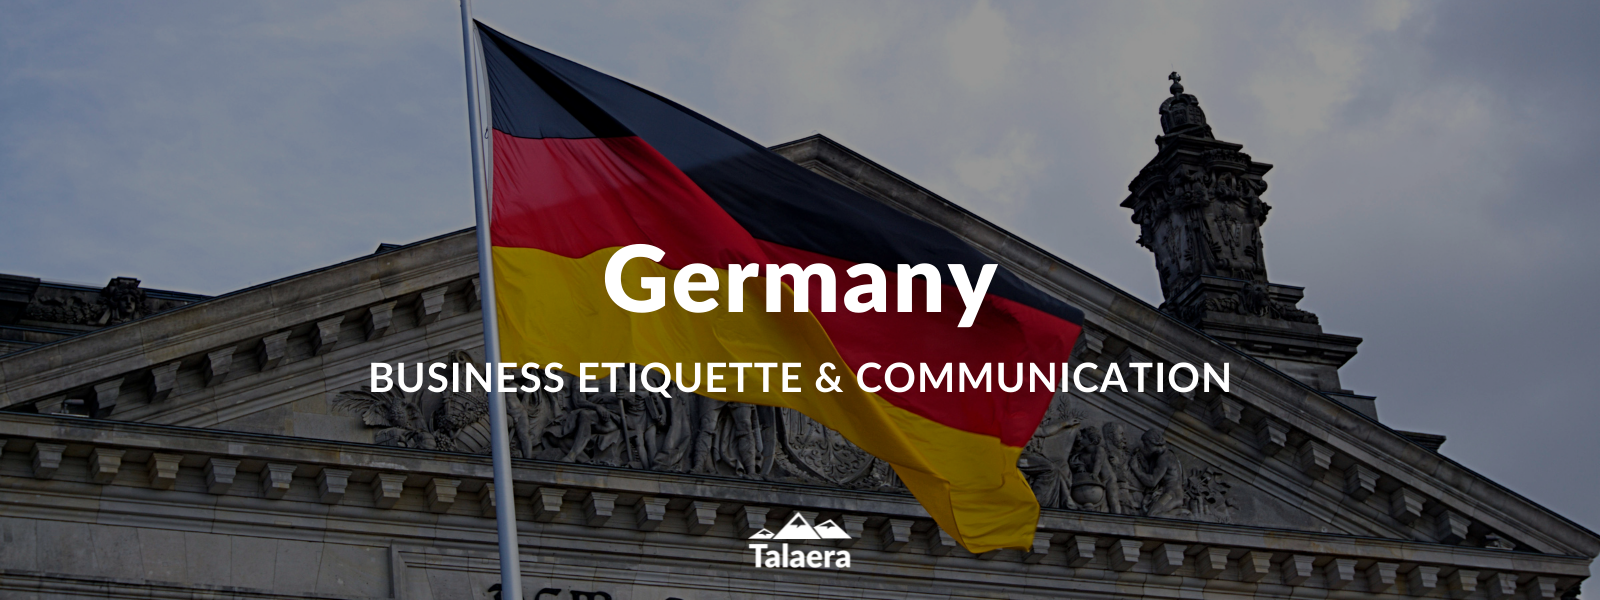 Business Etiquette and Communication in Germany - Talaera Talks Business English